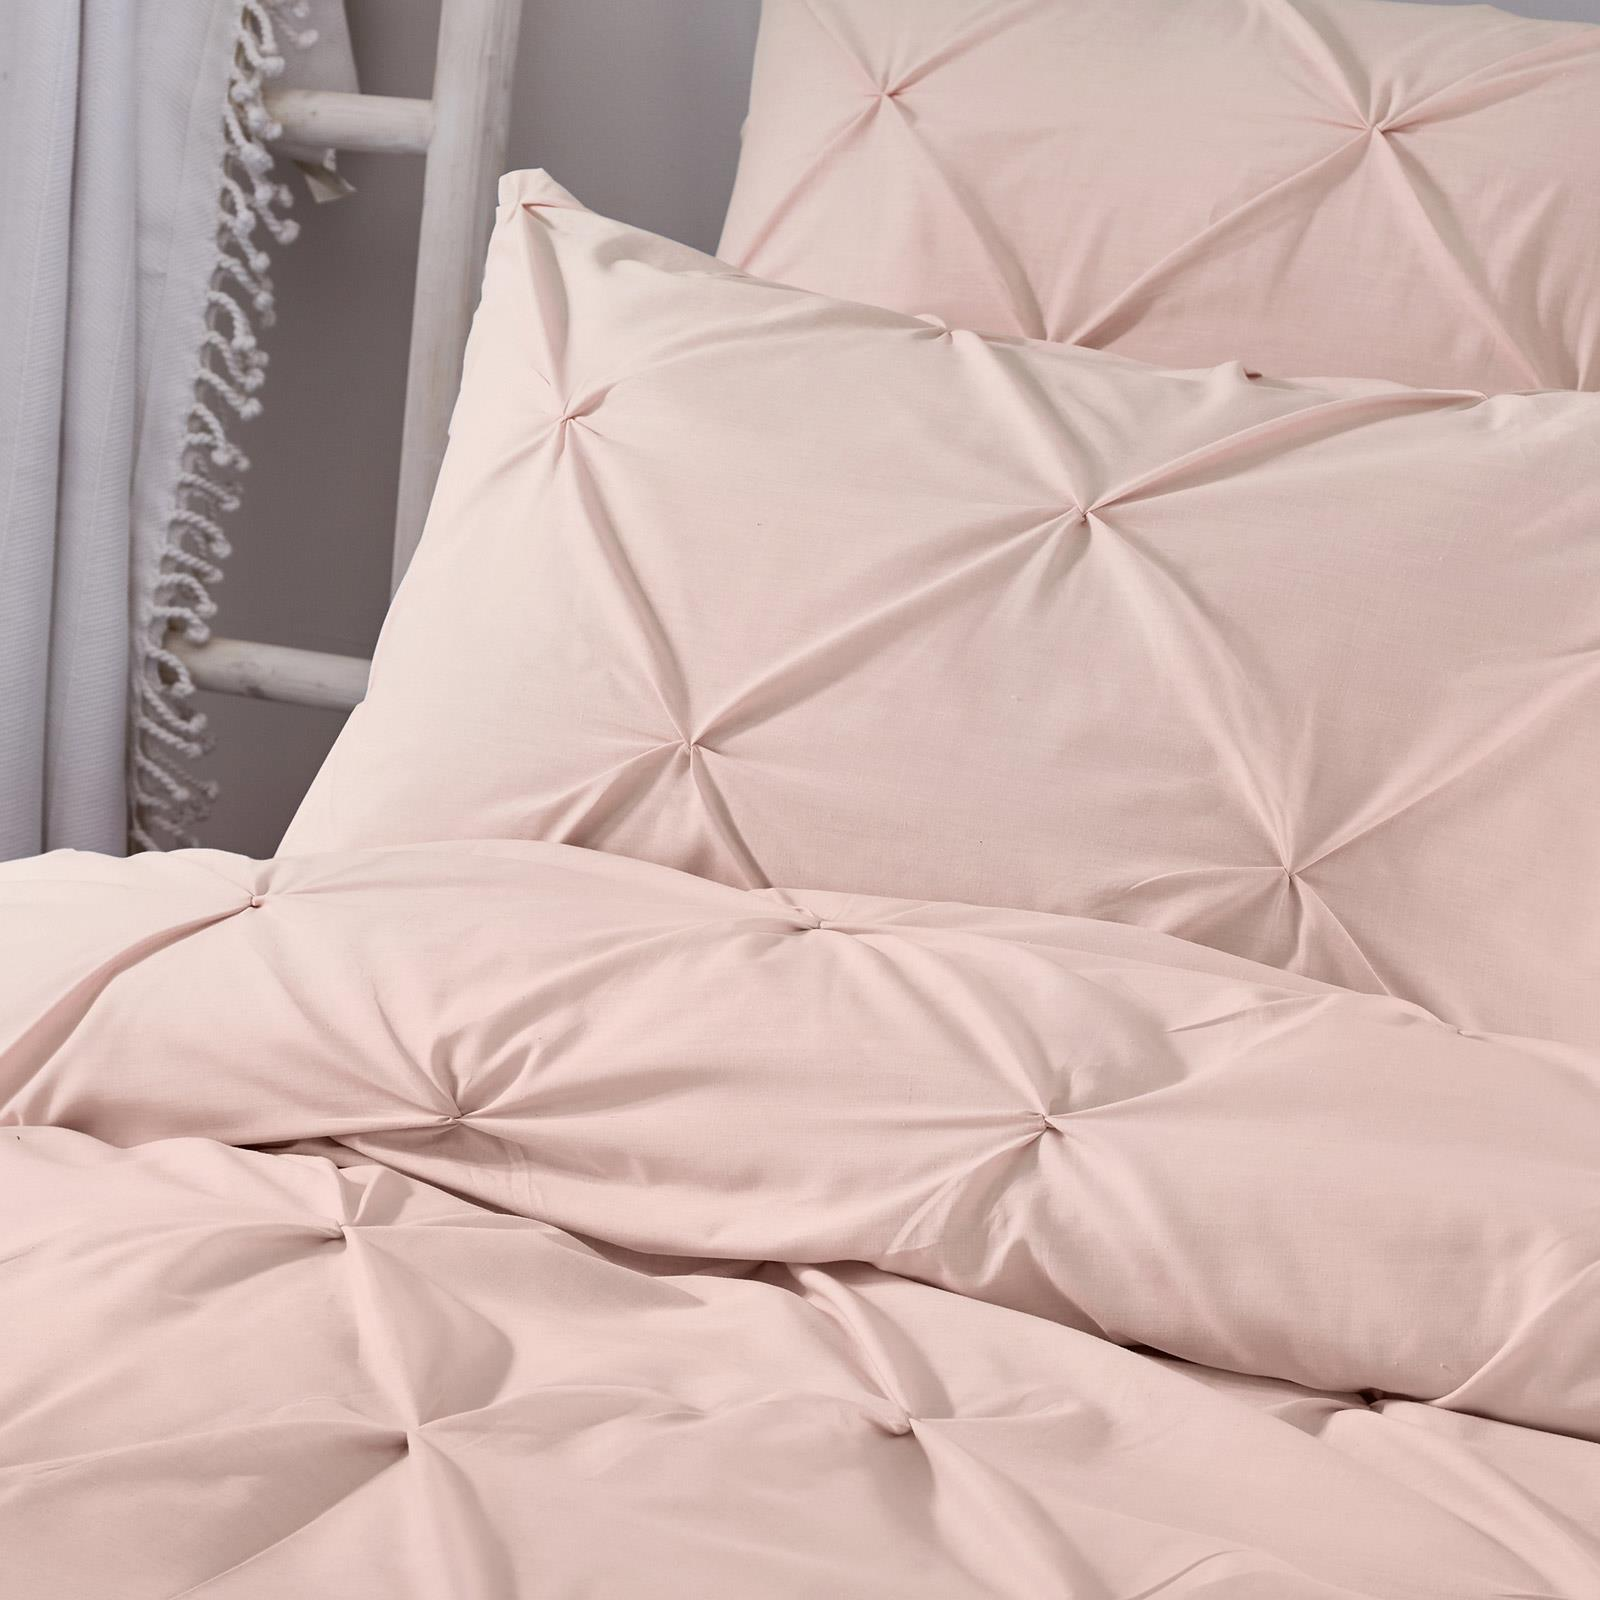 Blush-Duvet-Covers-Ruched-Pin-Tuck-Stitched-Plain-Pink-Quilt-Cover-Bedding-Sets thumbnail 14